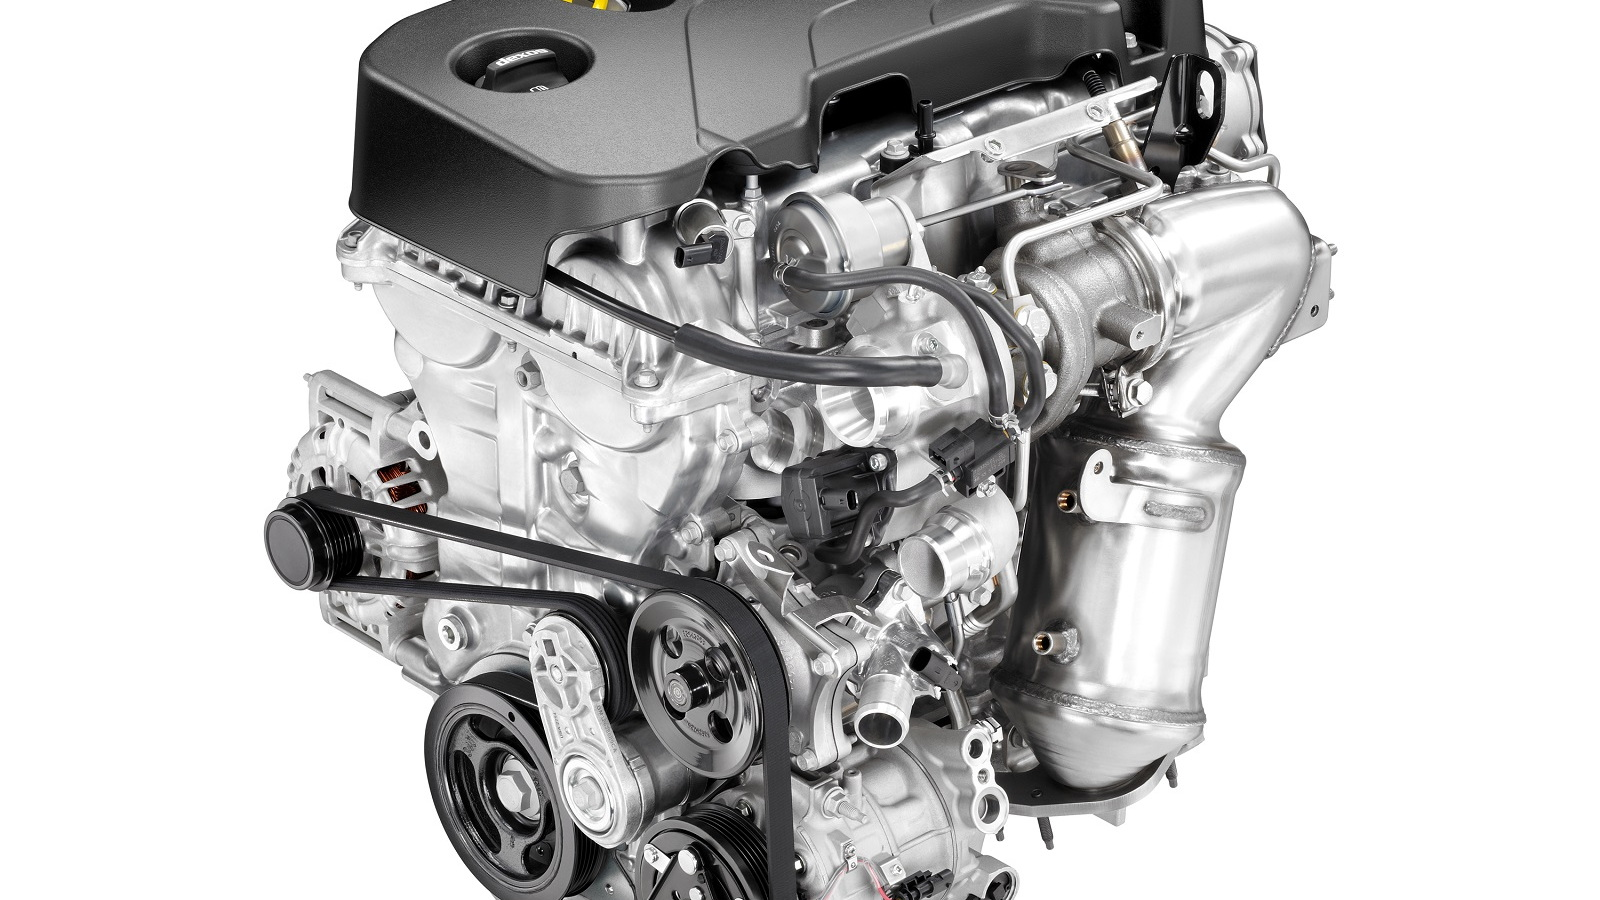 New GM 1.4-liter turbo Ecotec engine introduced for 2015 cars